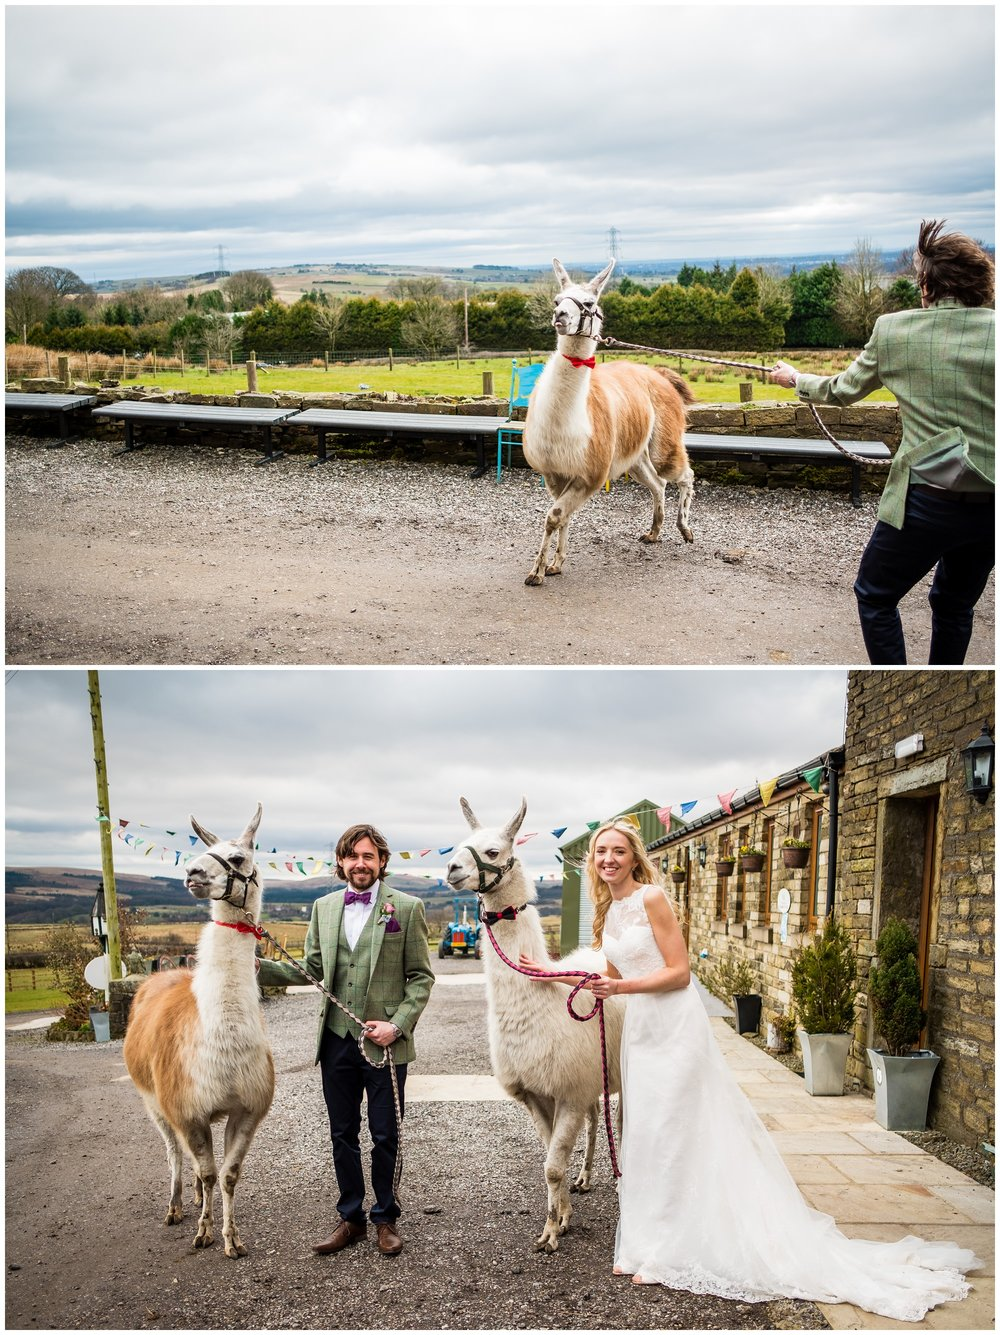 newlyweds with lamas at the wellbeing farm